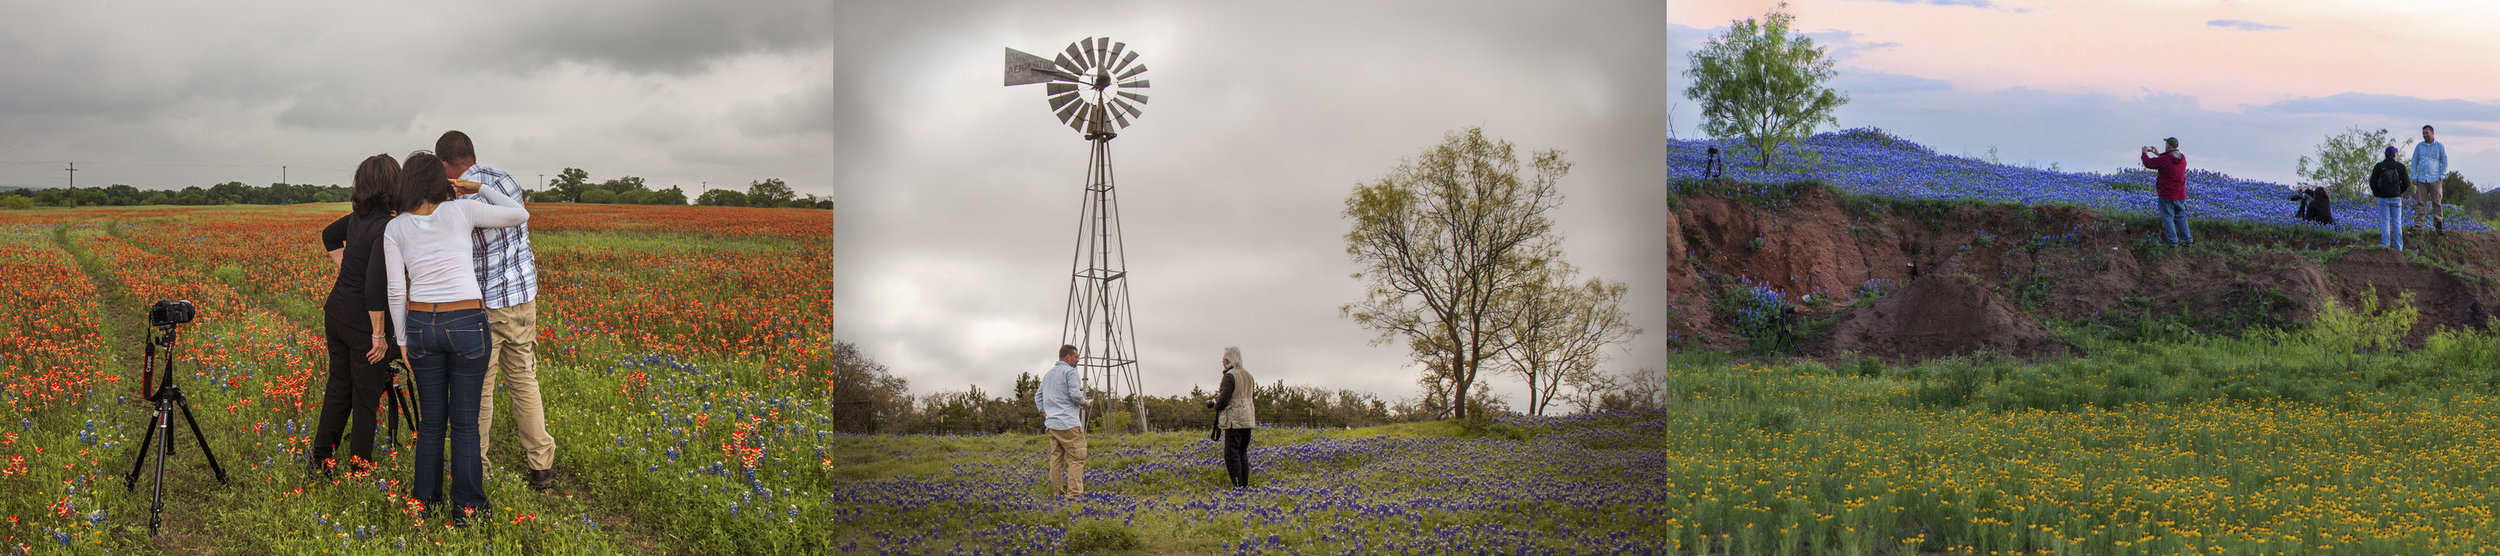 Participants of three separate Texas Bluebonnet Photography Workshops throughout the month.